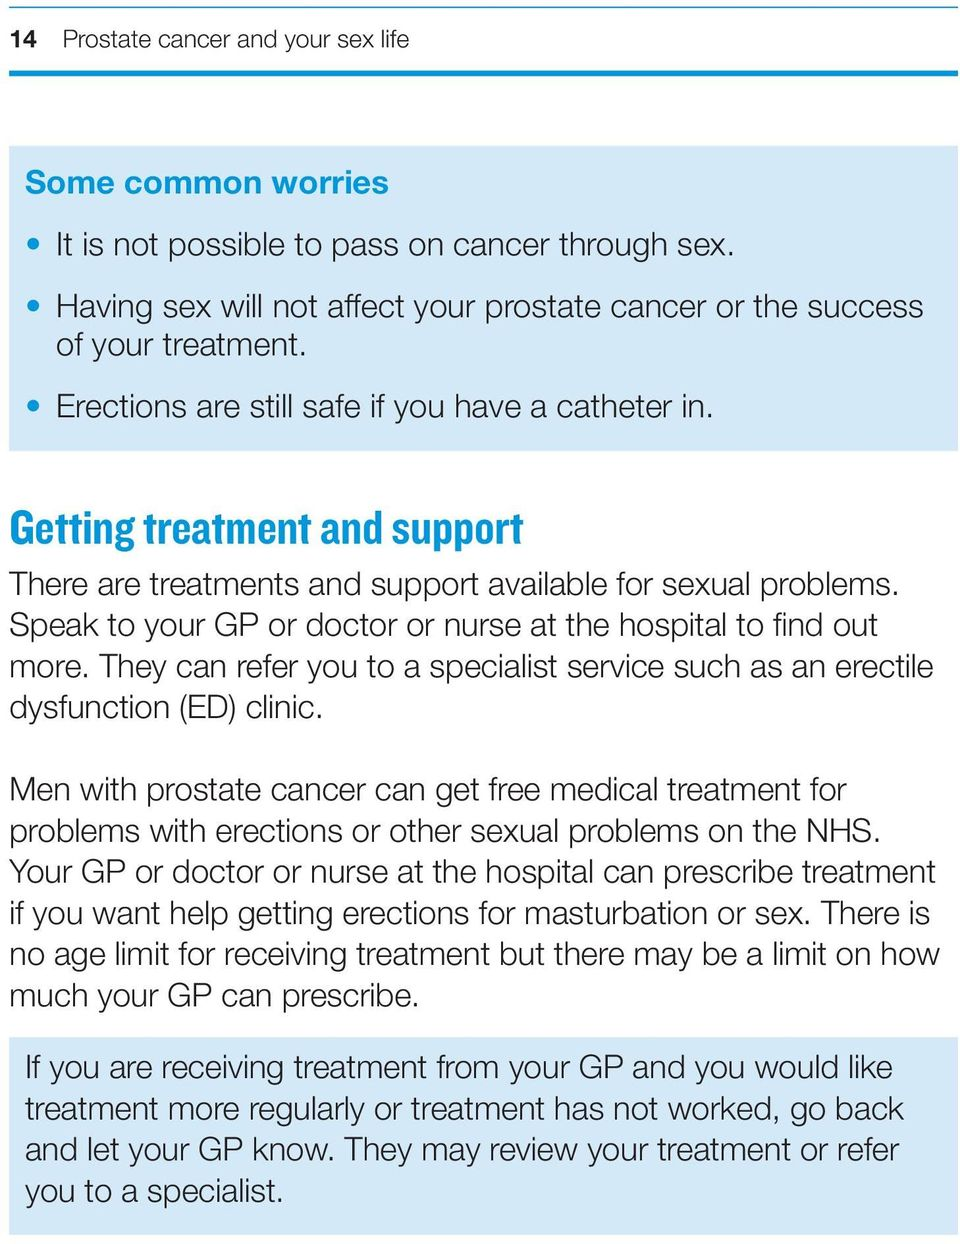 Speak to your GP or doctor or nurse at the hospital to find out more. They can refer you to a specialist service such as an erectile dysfunction (ED) clinic.